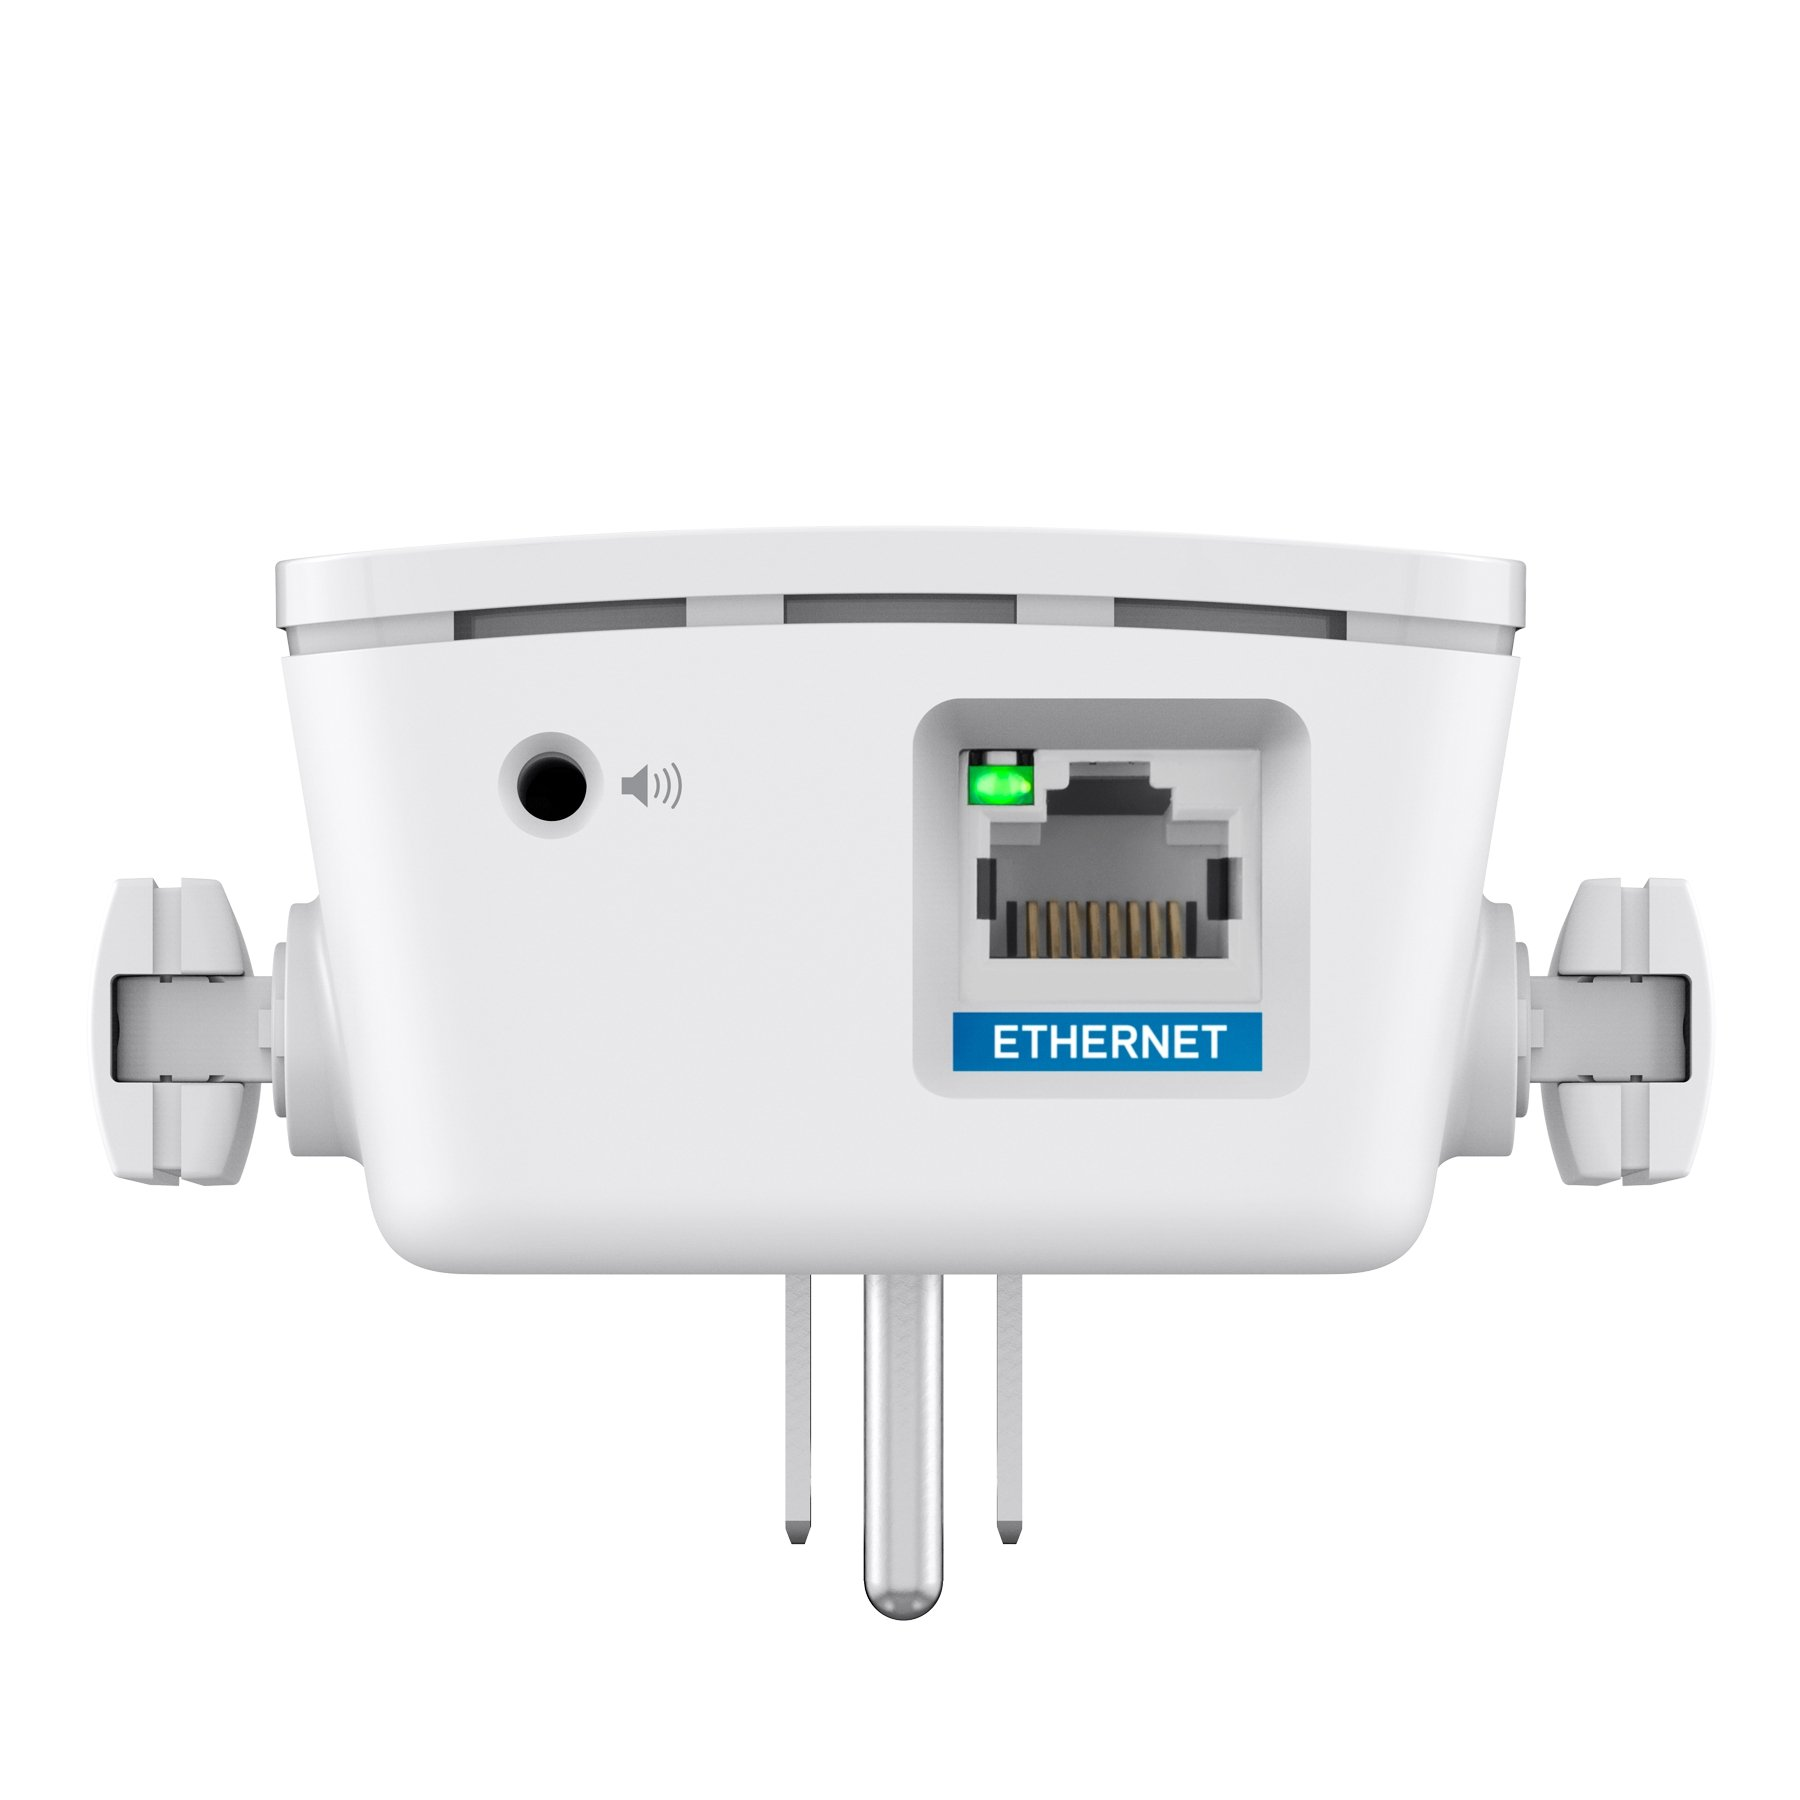 Linksys AC1200 Amplify Dual Band High-Power Wi-Fi Gigabit Range Extender / Repeater with Intelligent Spot Finder Technology and AC Pass Thru (RE6700) by Linksys (Image #5)